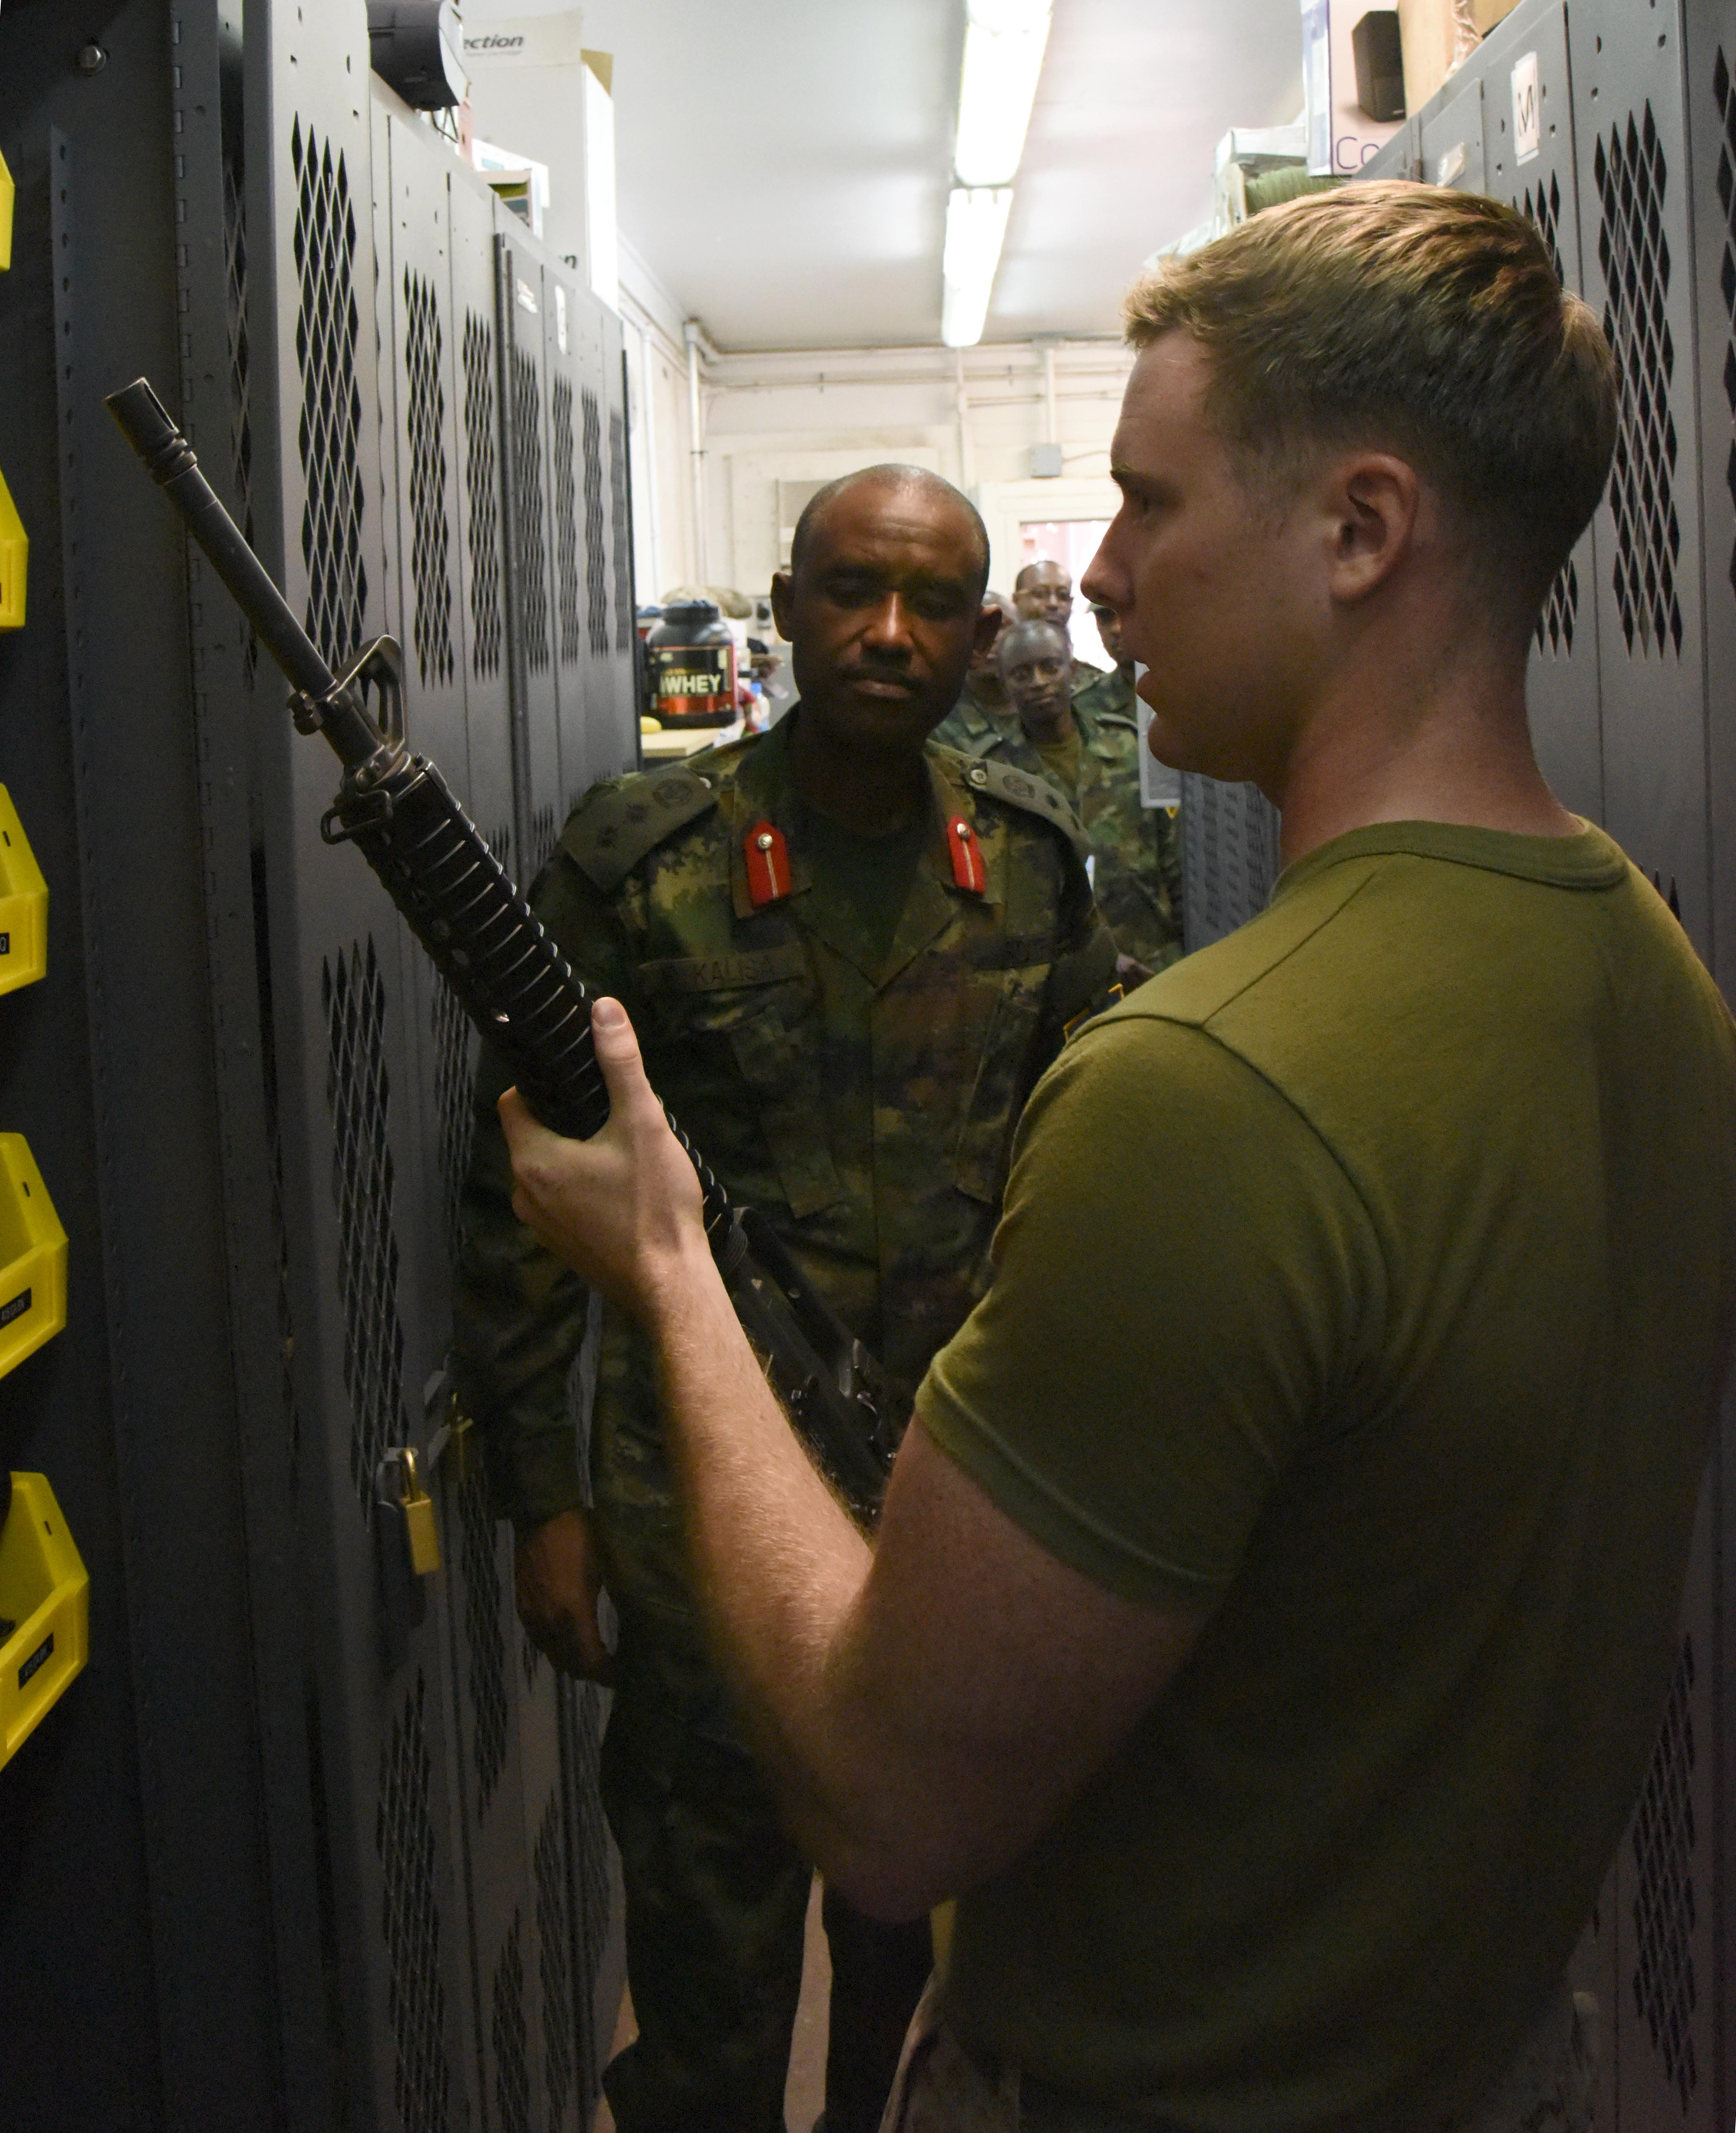 U.S. Marine Cpl. Zachary Ernesti, Combined Joint Task Force-Horn of Africa armory NCO-in-charge, displays a rifle stored in the armory to Rwanda Defence Force Col. Faustin Kalisa, RDF Battalion commander, at Camp Lemonnier, Djibouti, Feb. 23, 2016. The RDF engineers toured Camp Lemonnier to see how U.S. expeditionary structures are set up. (U.S. Air Force photo by Staff Sgt. Victoria Sneed)